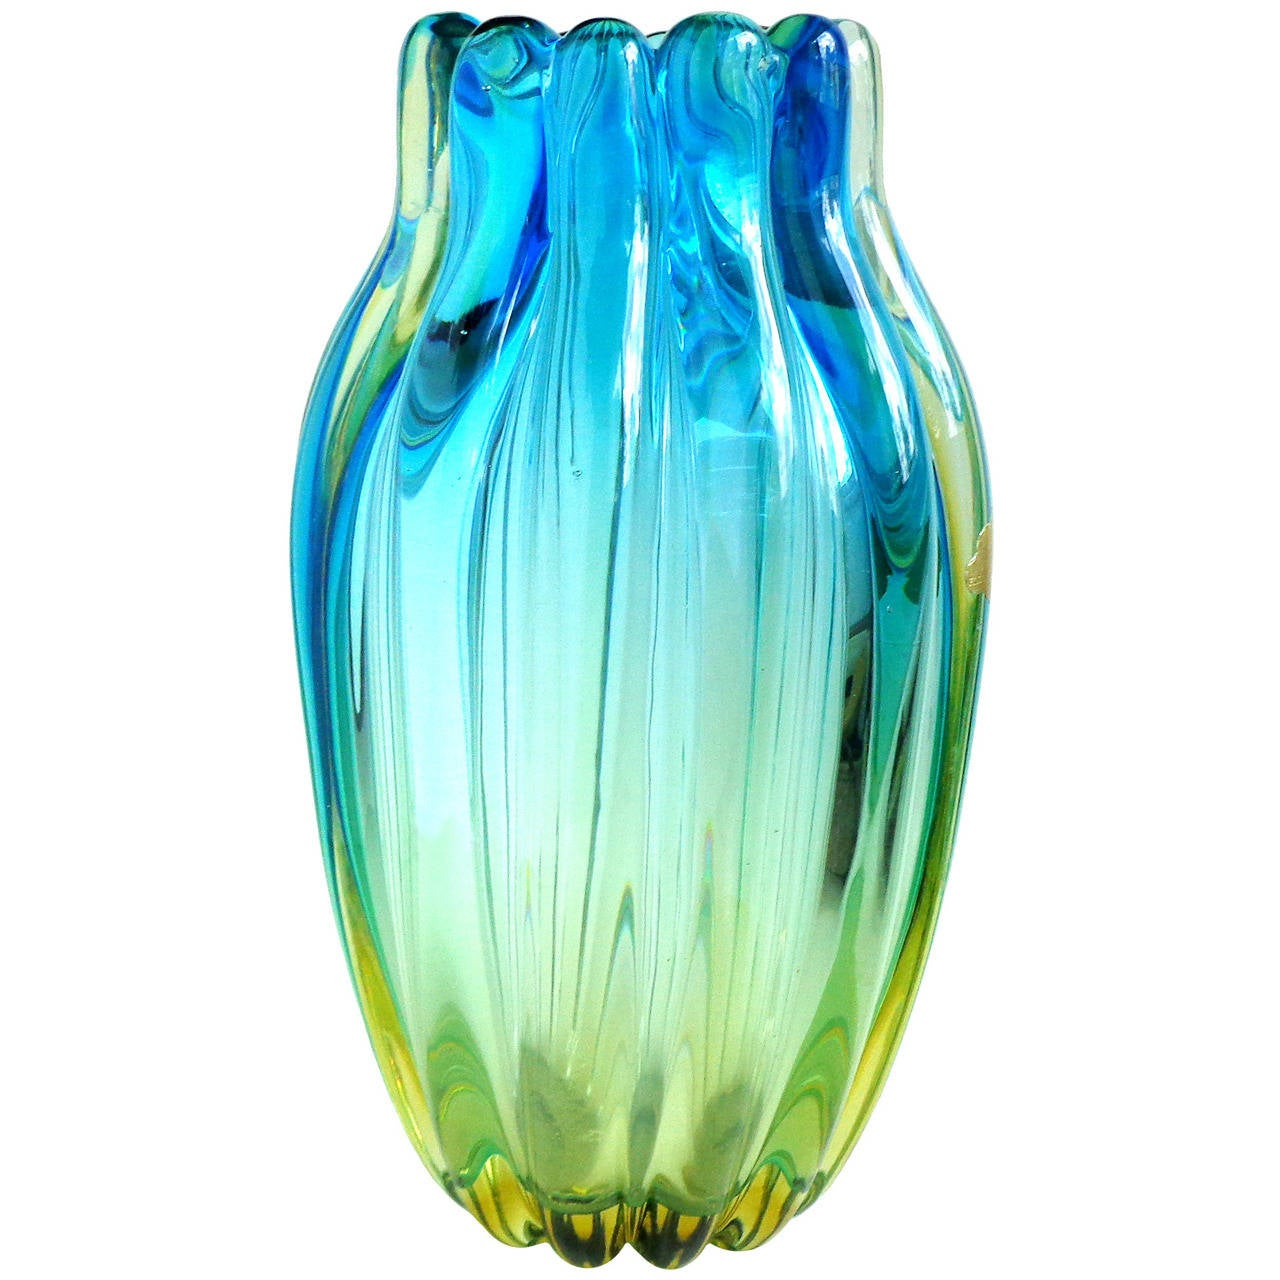 Alfredo barbini murano sommerso blue yellow ribbed italian art alfredo barbini murano sommerso blue yellow ribbed italian art glass vase for sale reviewsmspy